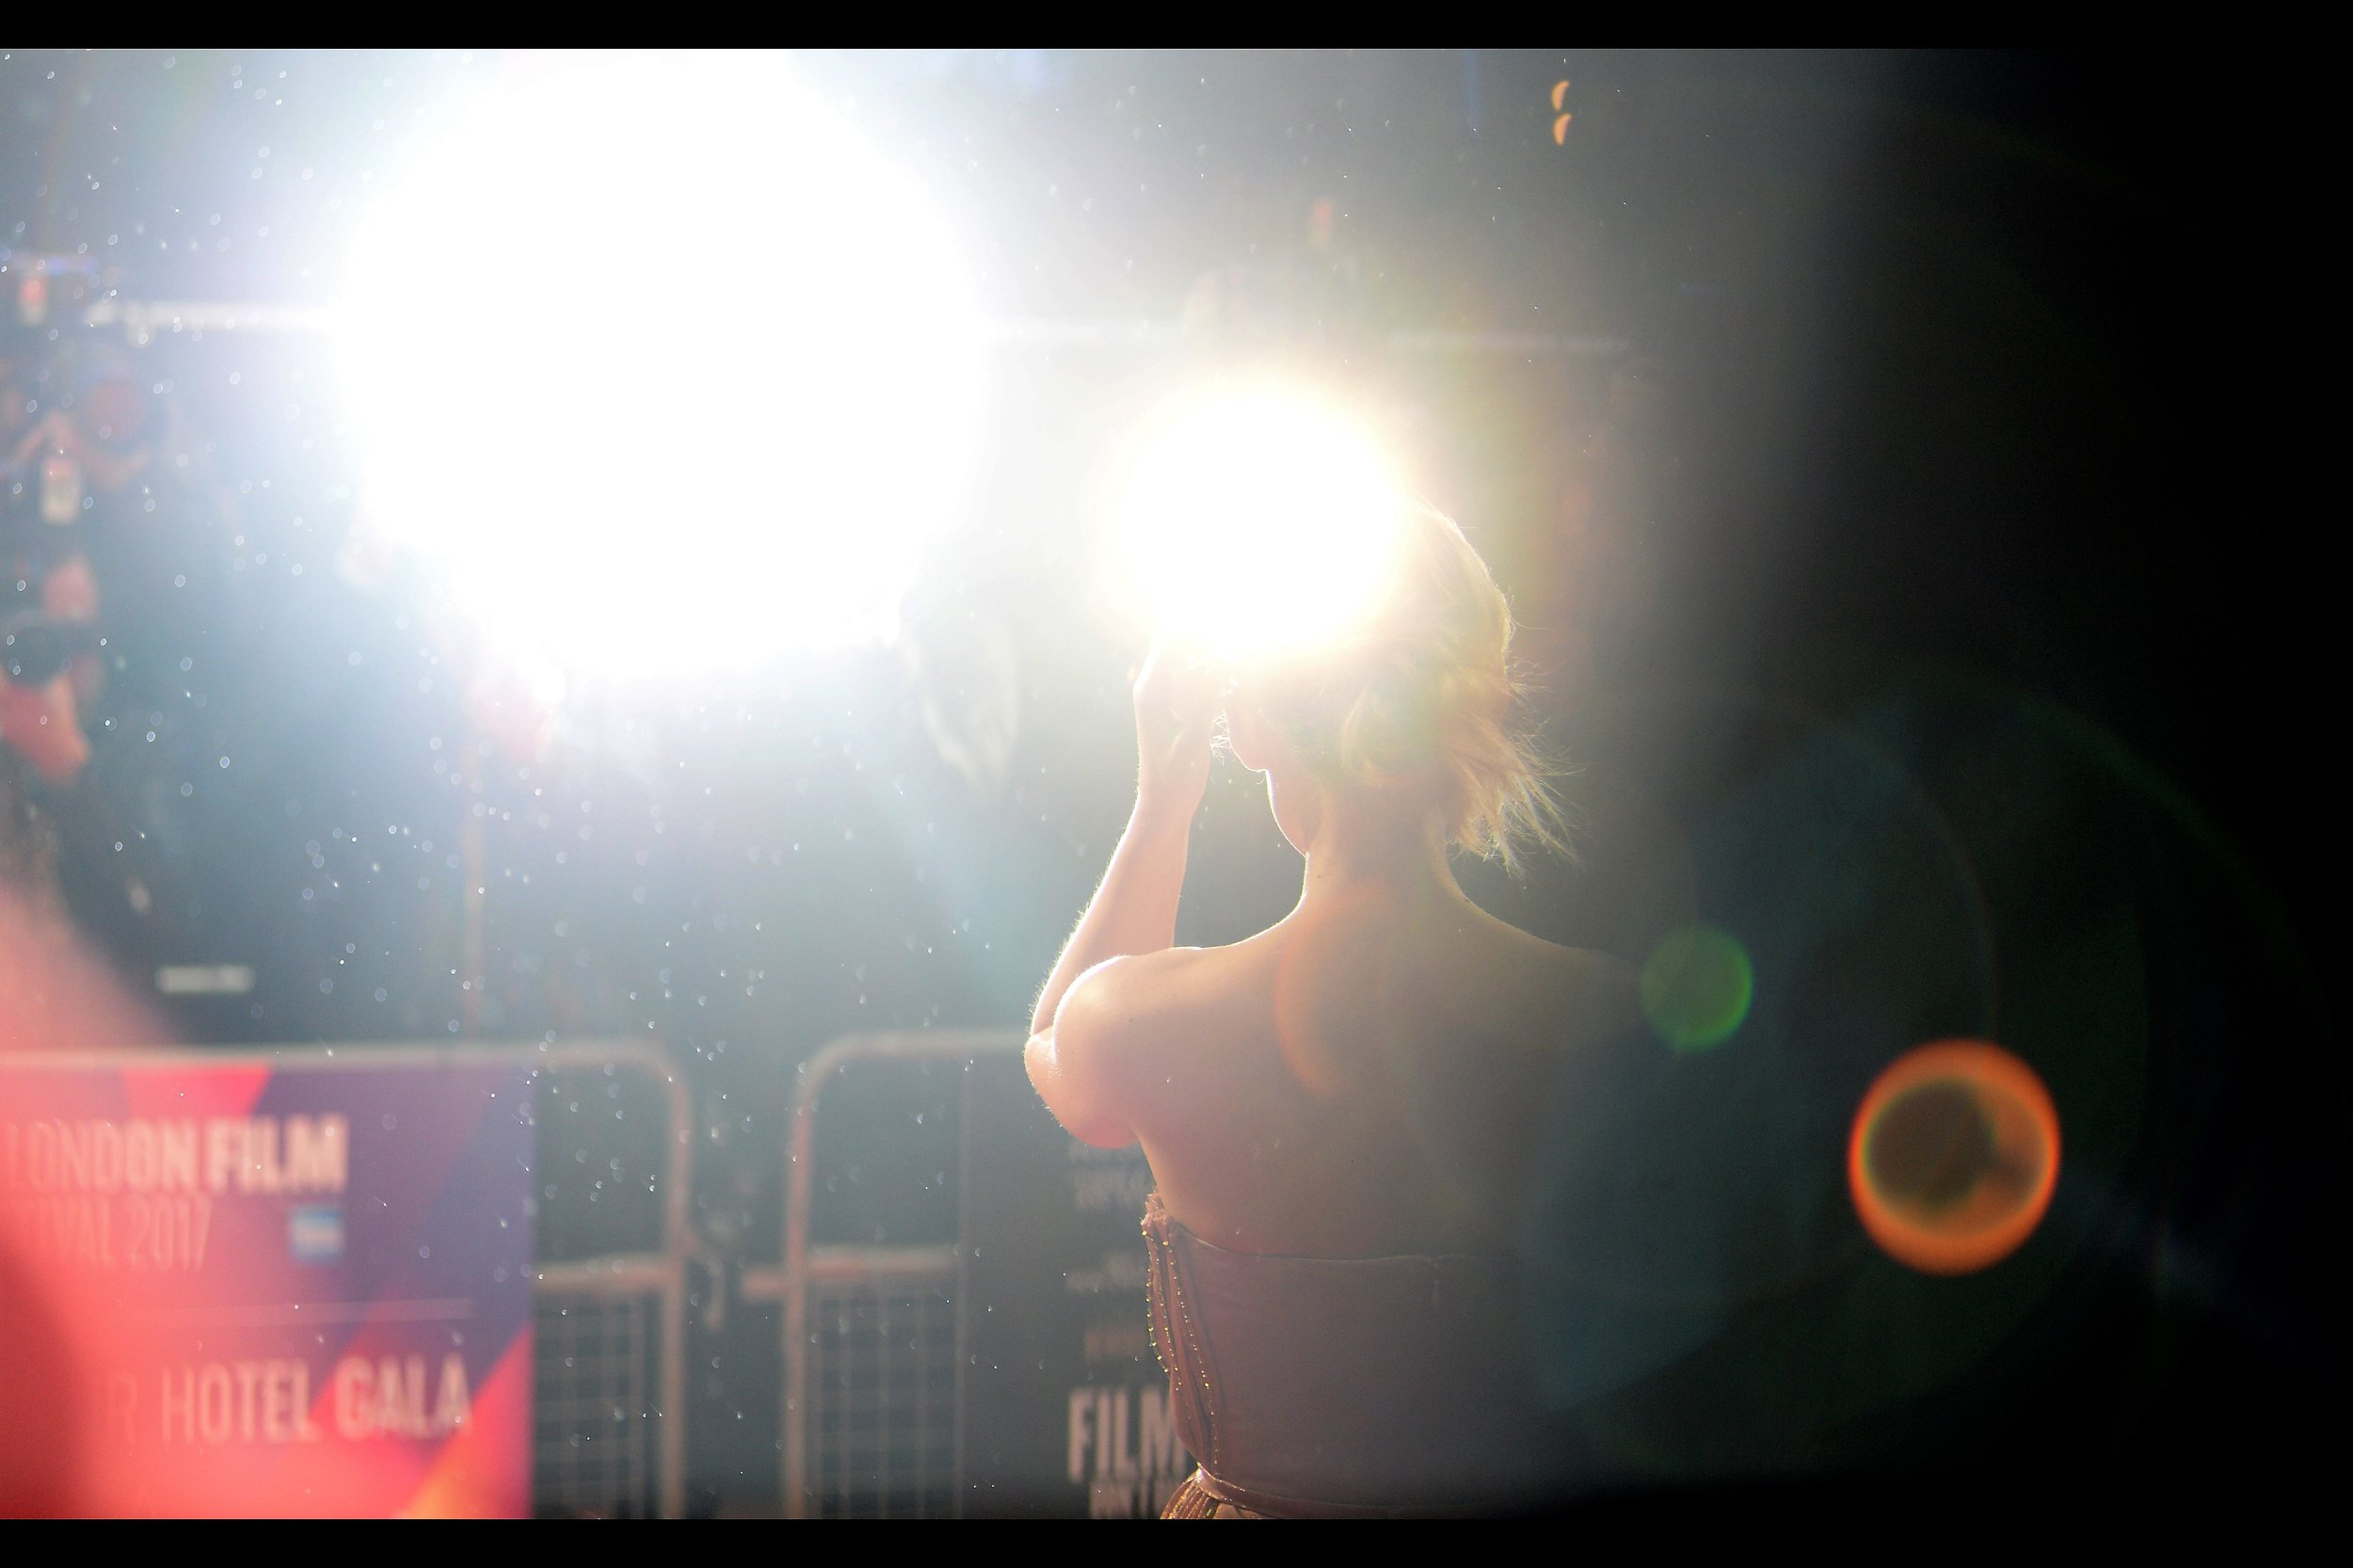 Lens Flare!! (I'm a fan... and since I use a Nikon with extreme focal length, I don't get it all that often)